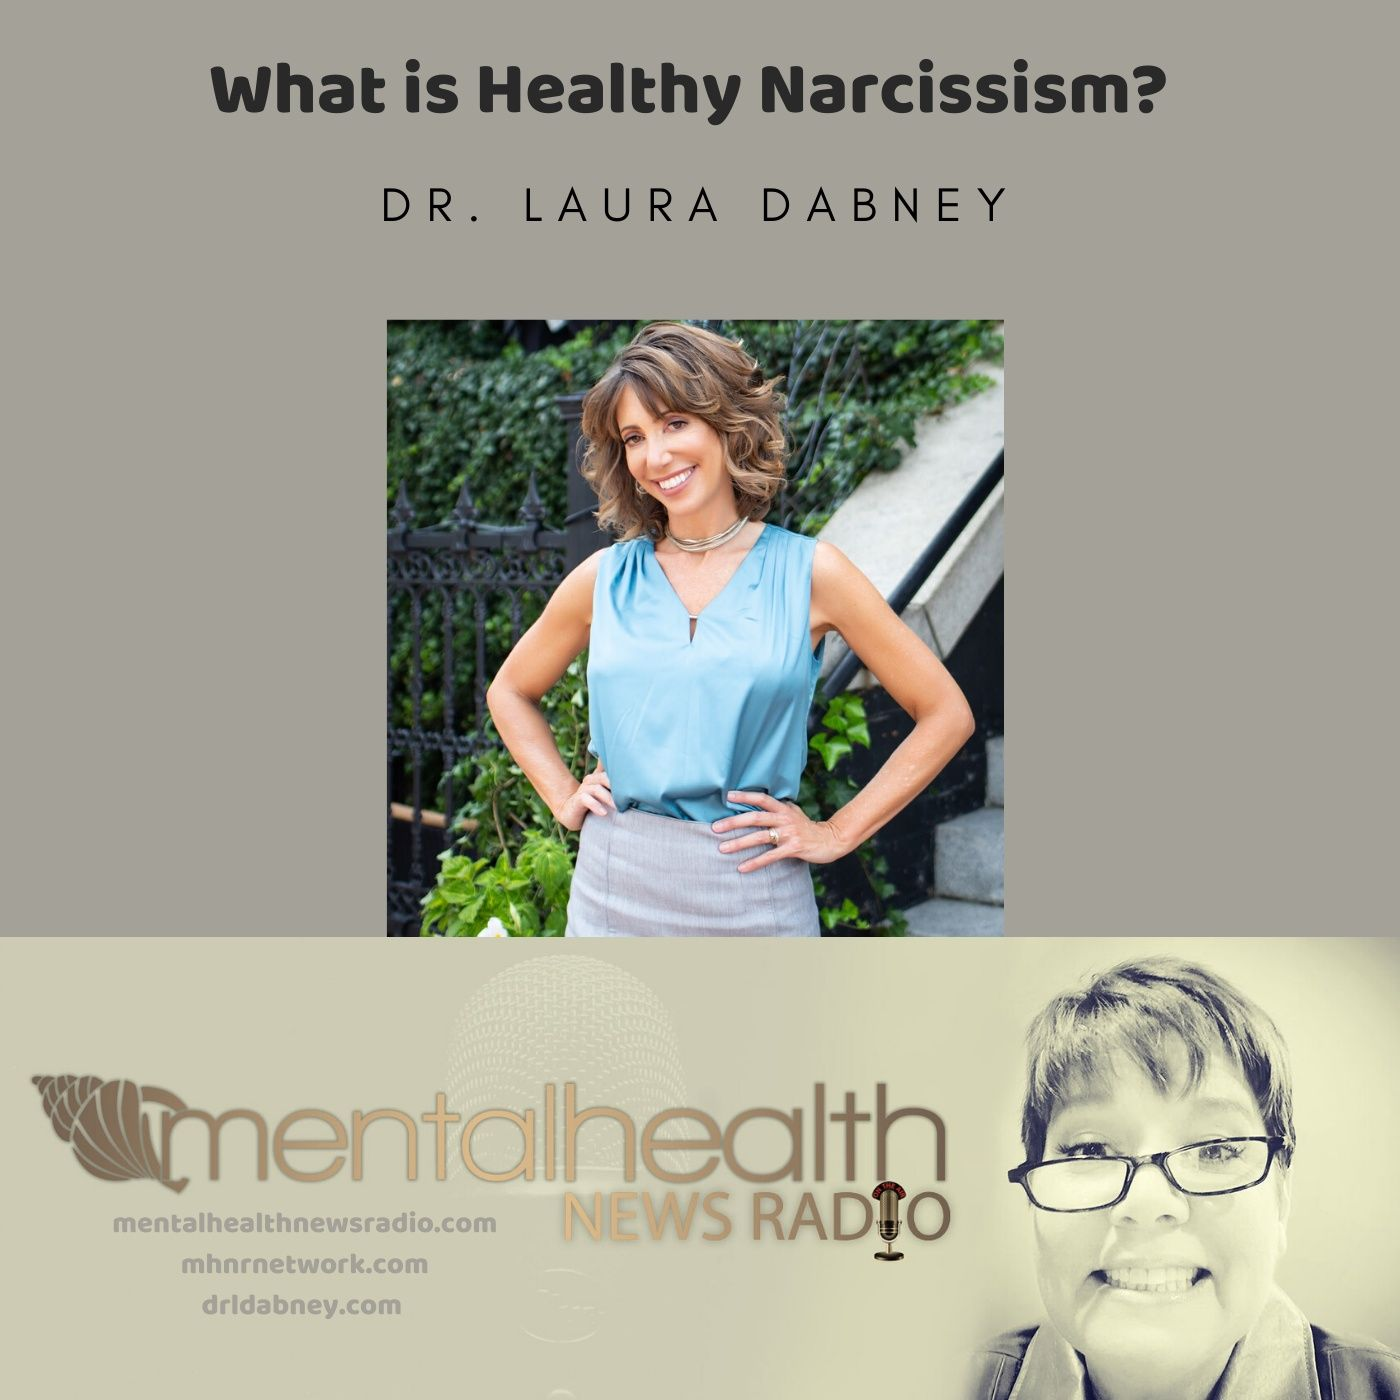 Mental Health News Radio - What Is Healthy Narcissism?